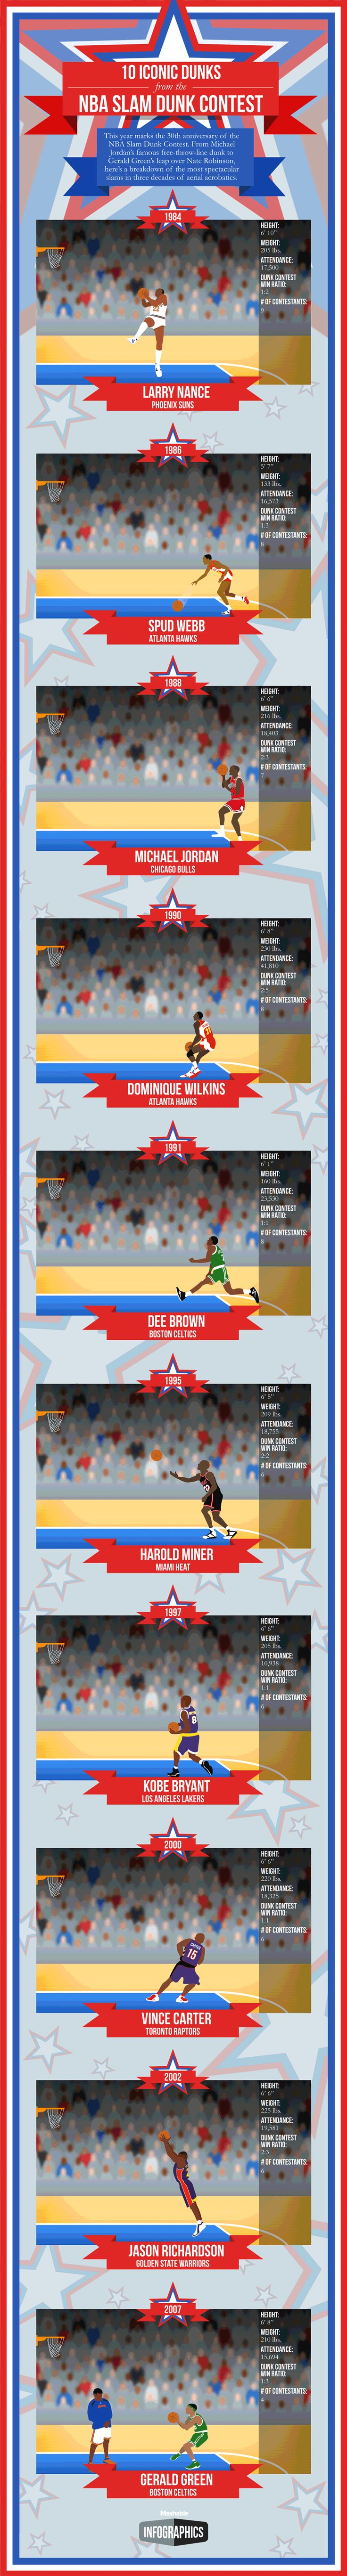 10 Iconic Dunks From the NBA Slam Dunk Contest